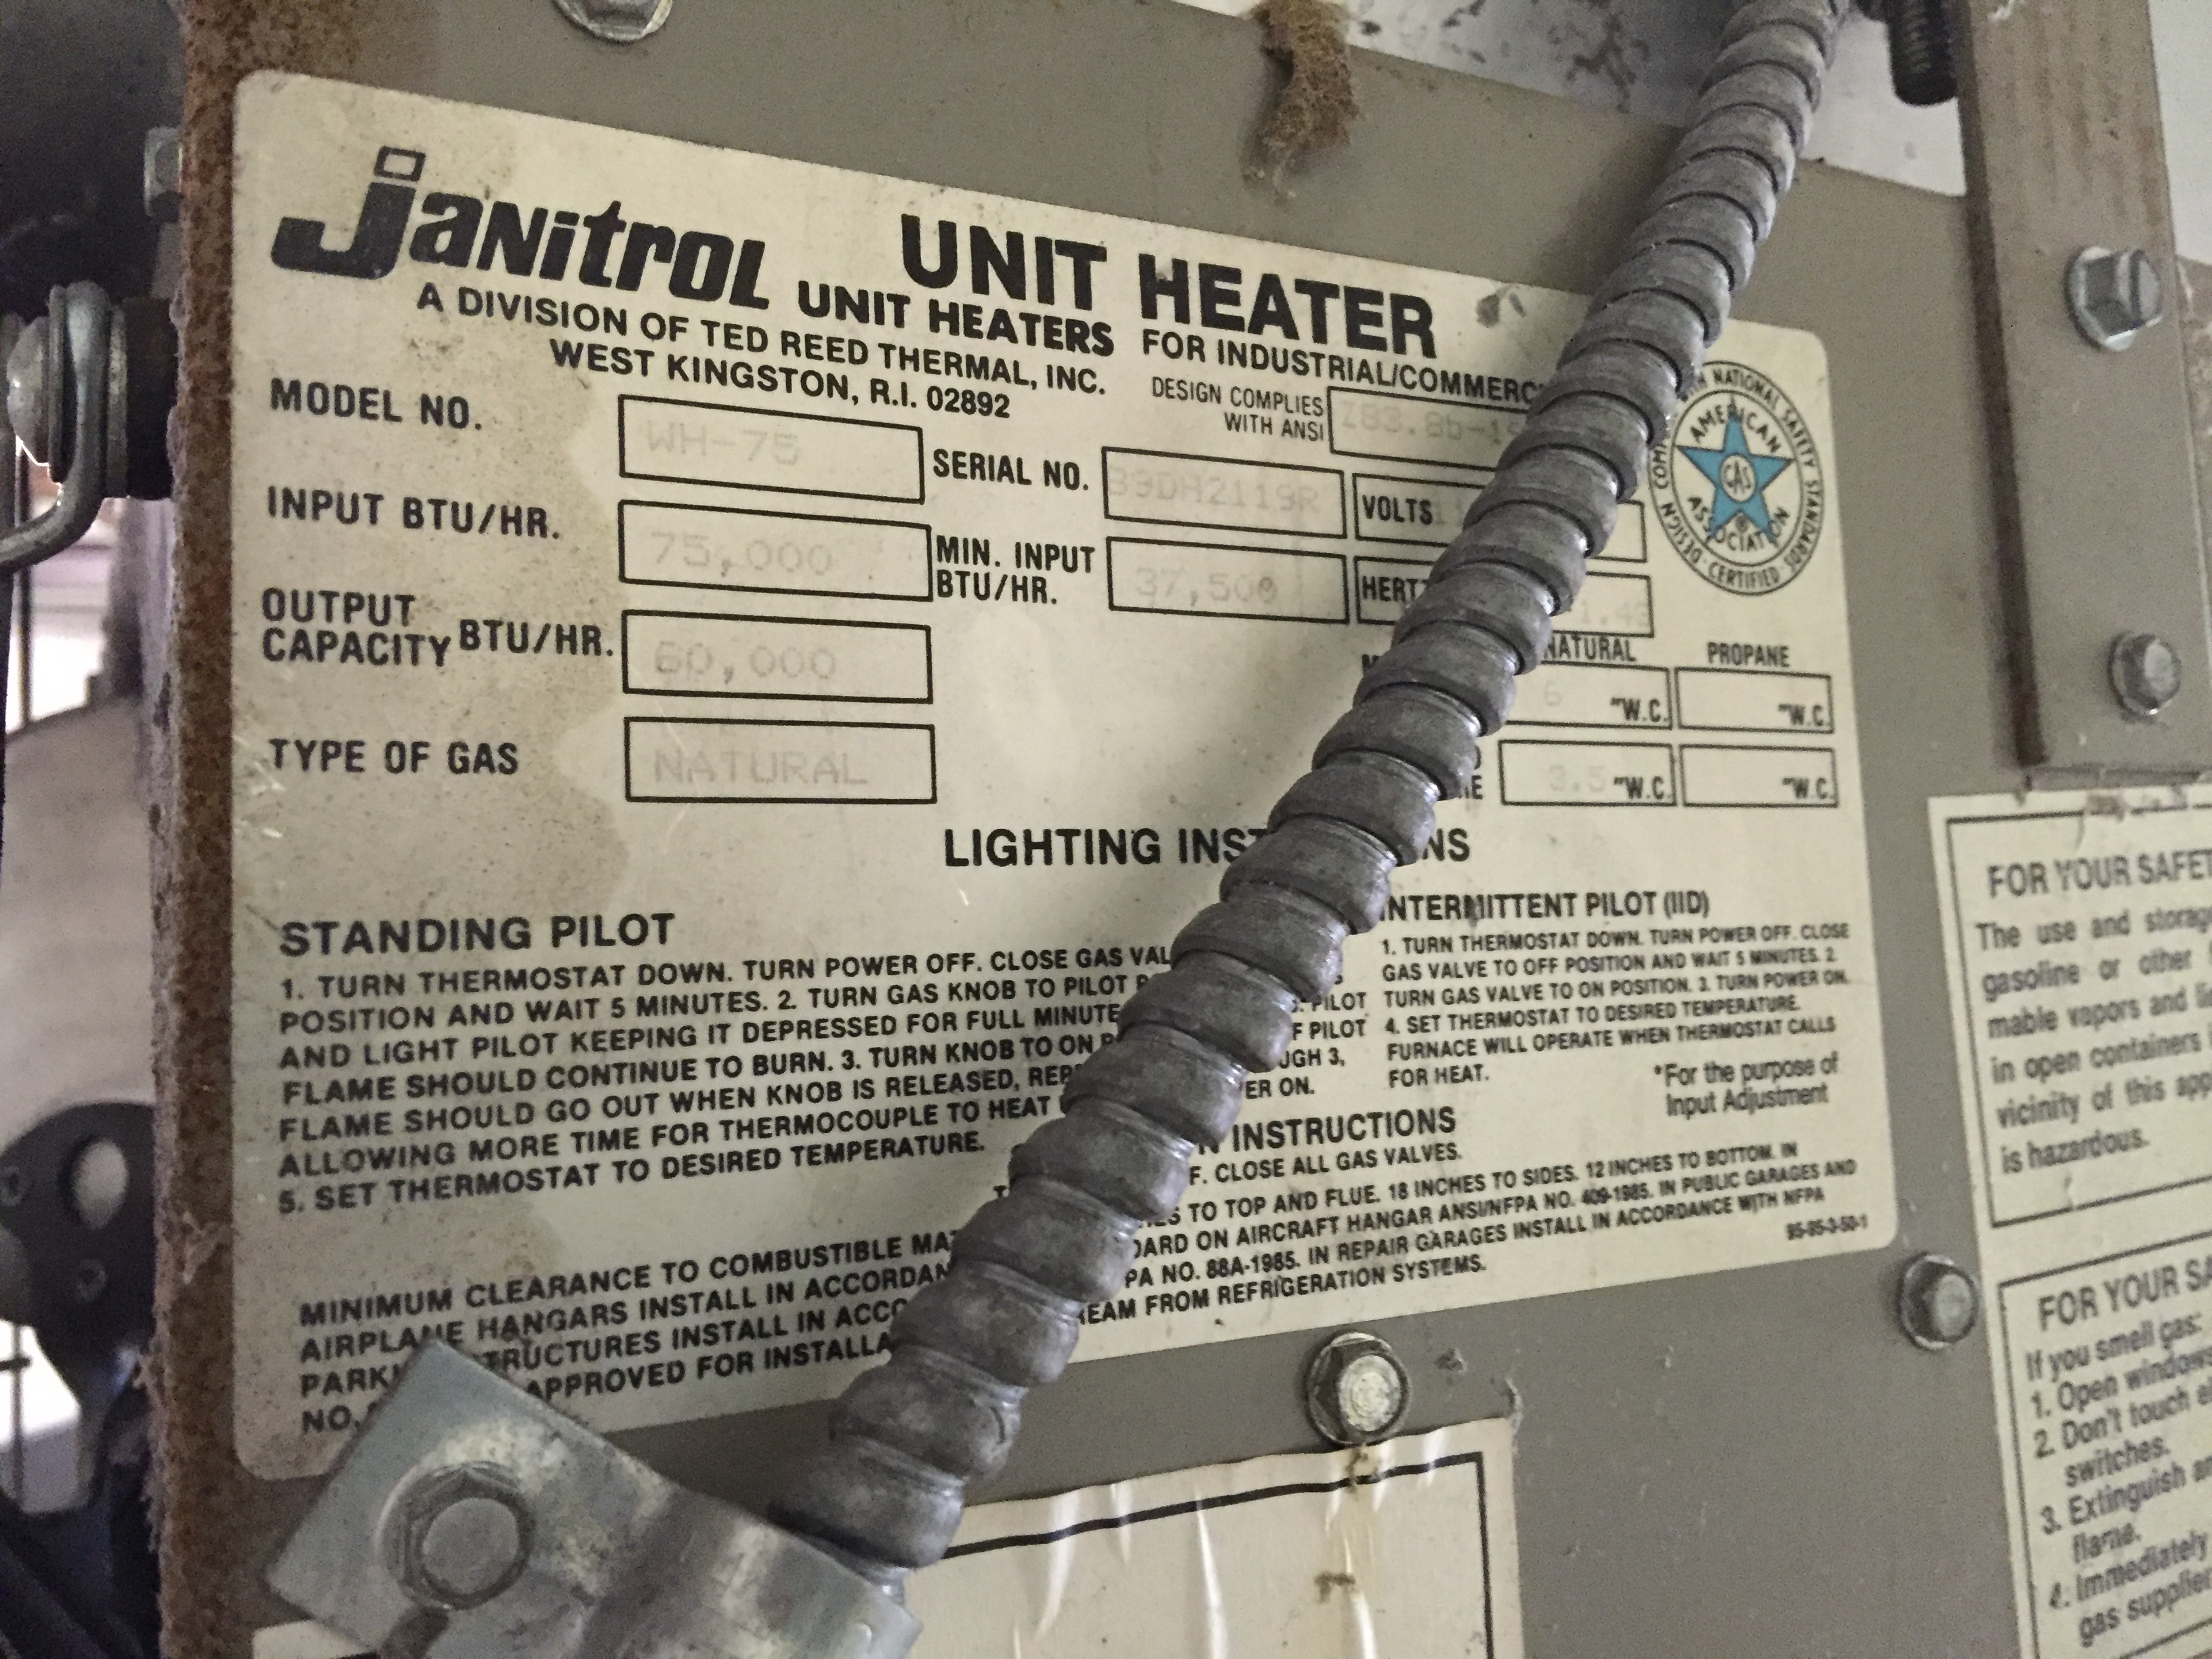 Typical Unit Heater Wiring Diagram Uh 724